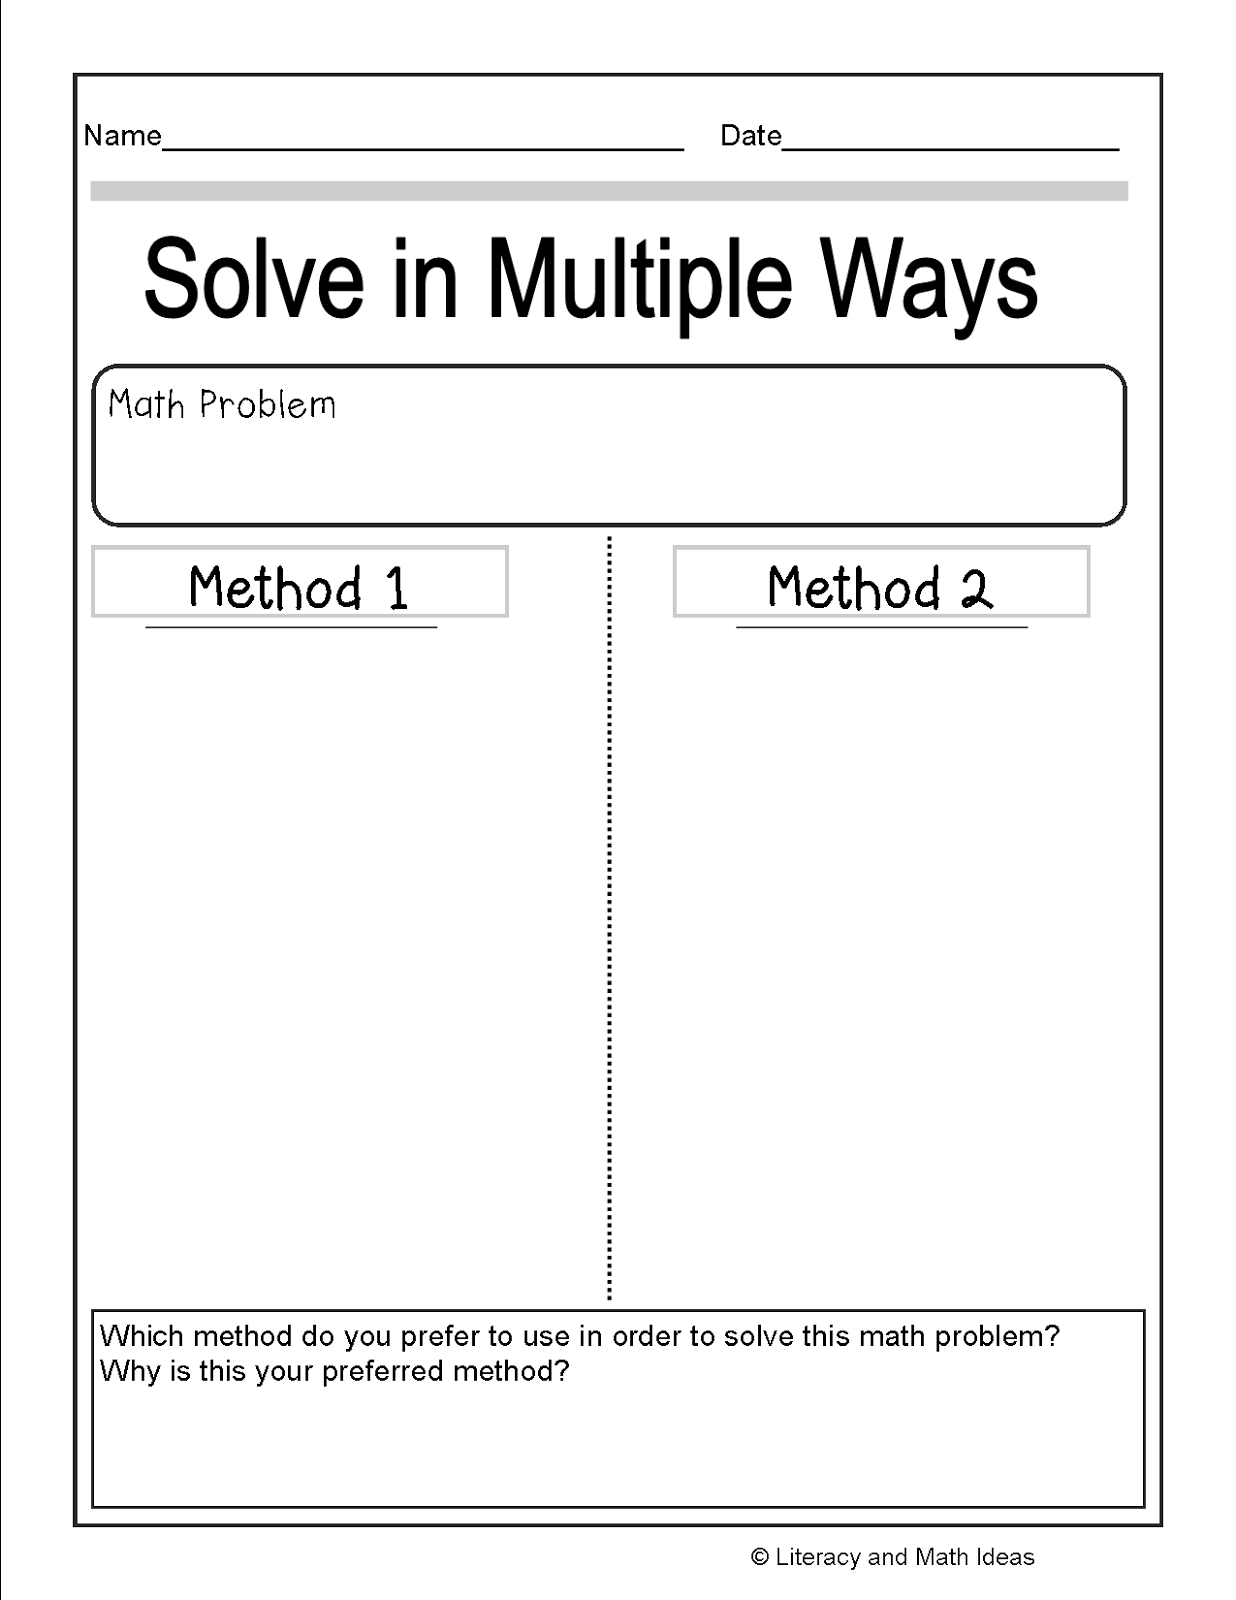 Free Template~Solve Math Problems in Multiple Ways | Teaching Tools ...